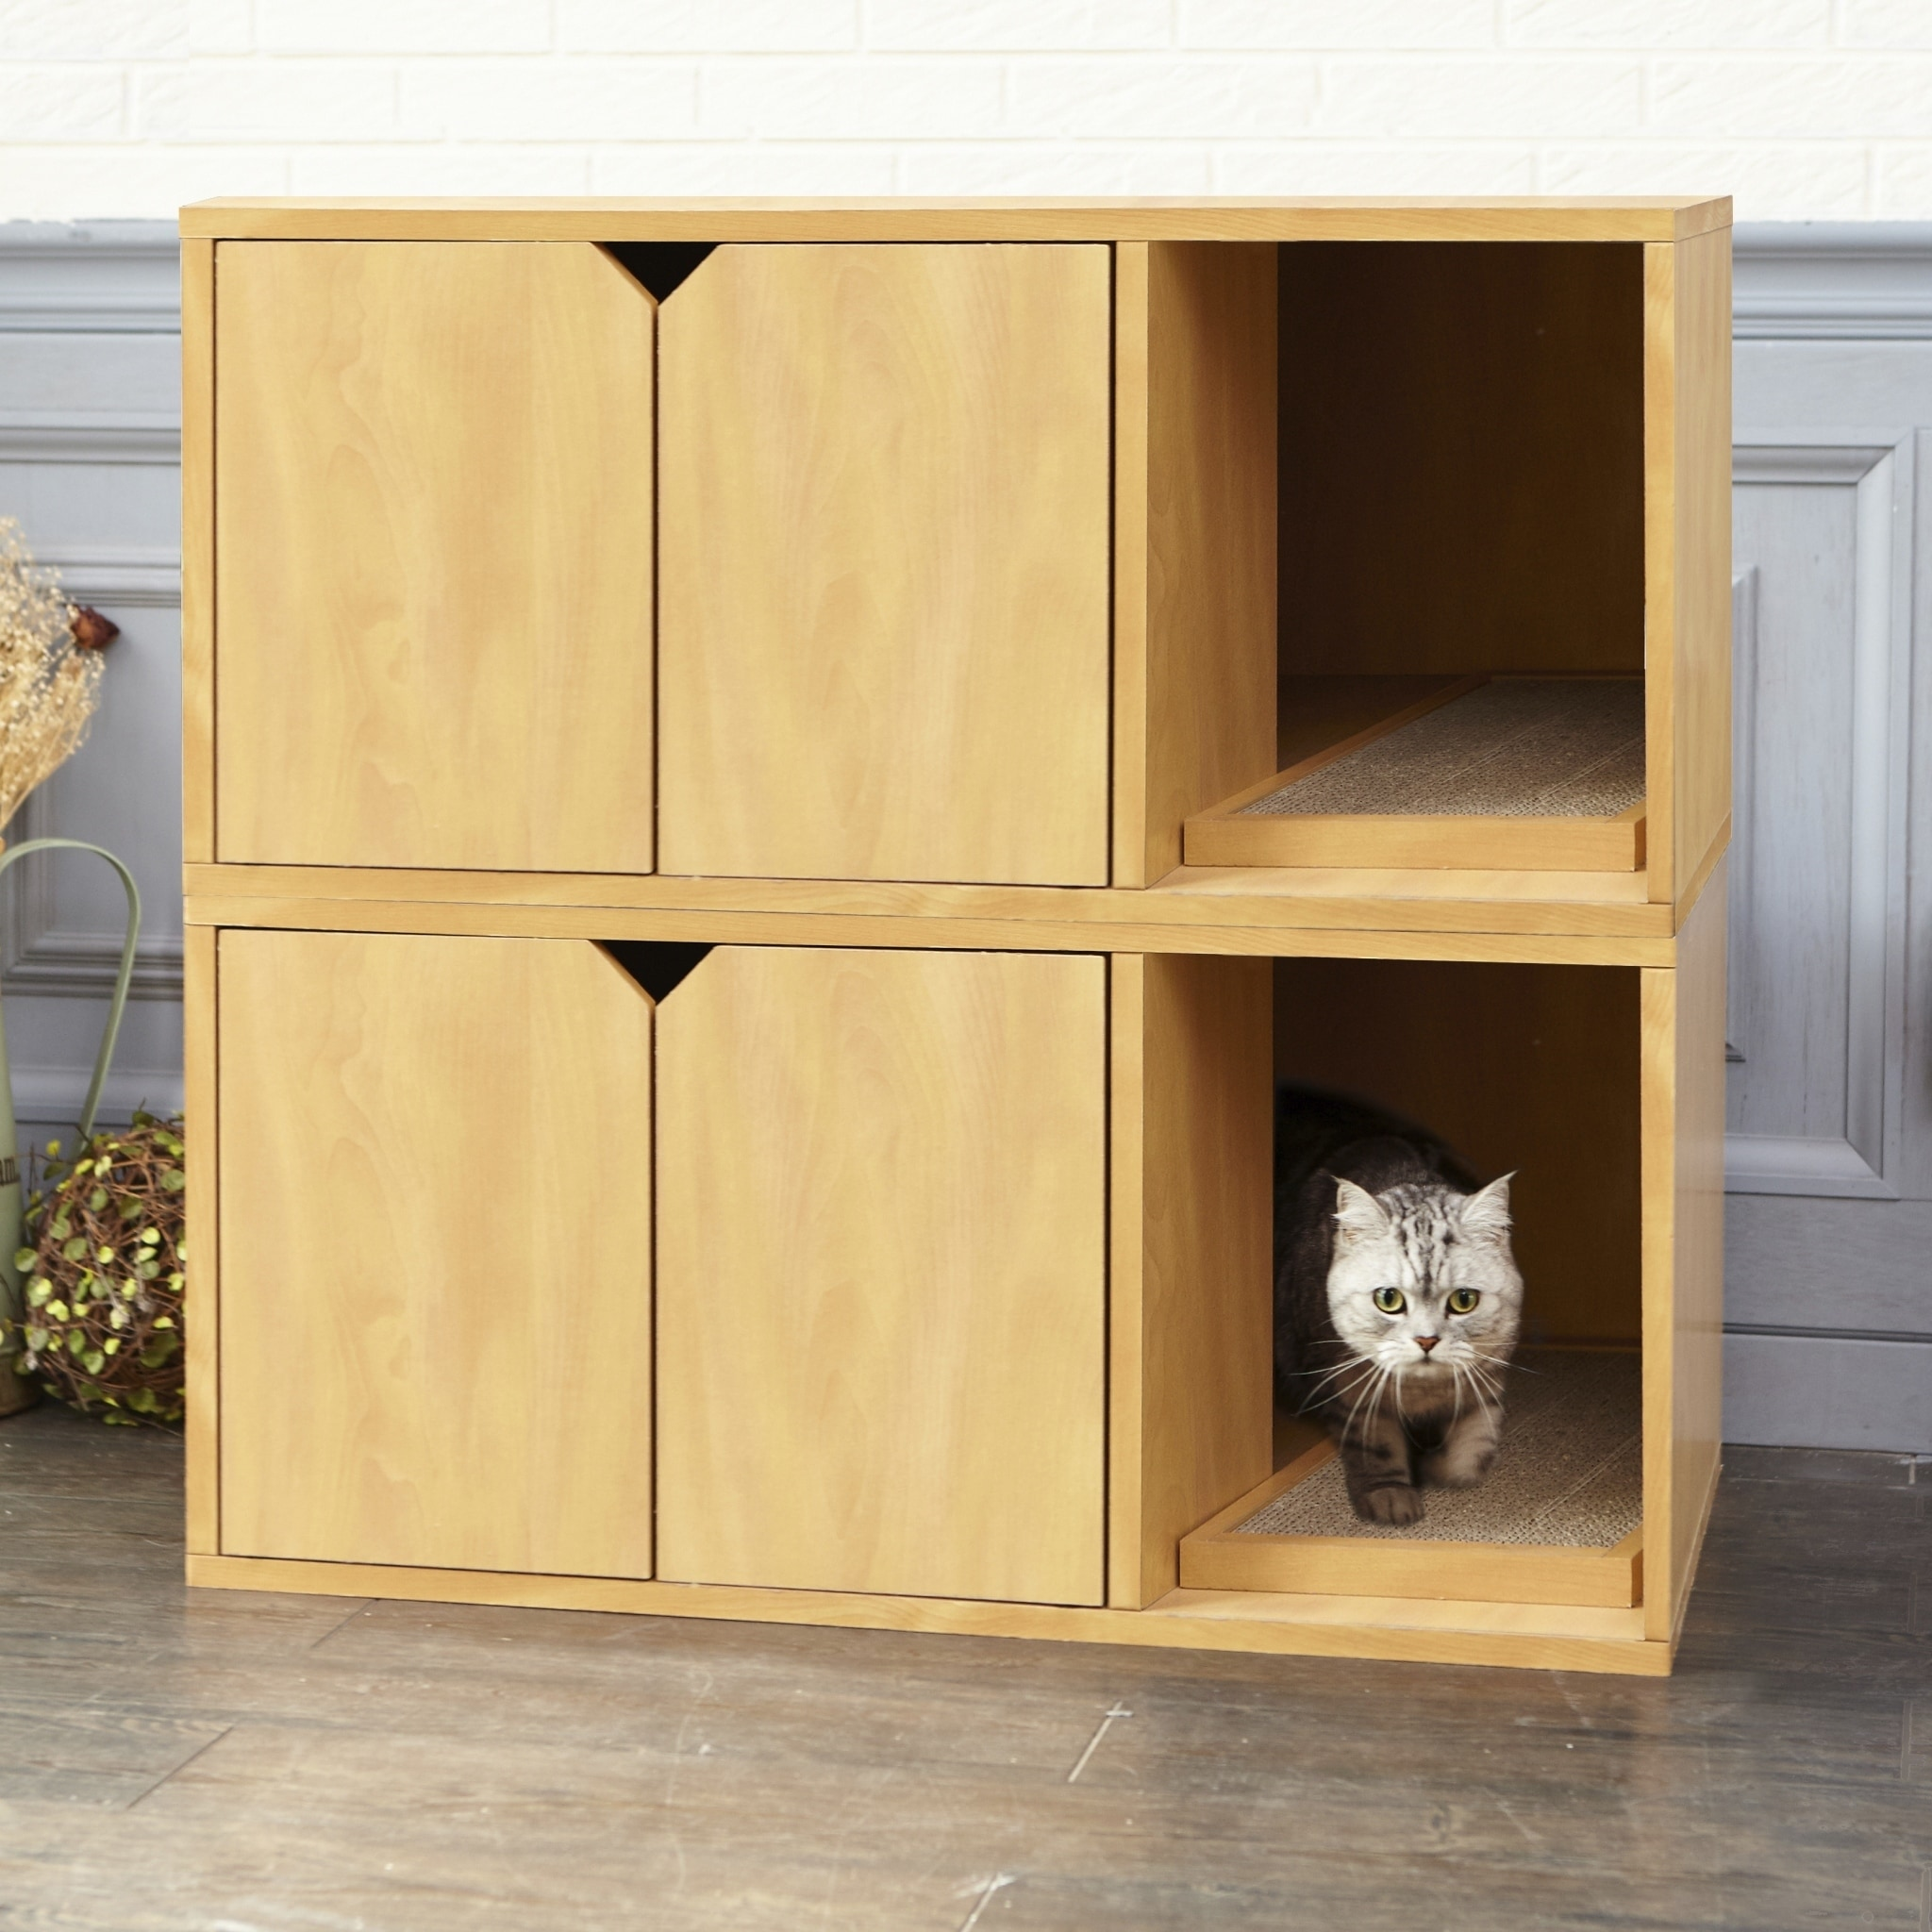 Eco Modern Double Cat Litter Box Furniture Natural Lifetime Guarantee Ships To Canada 20223904